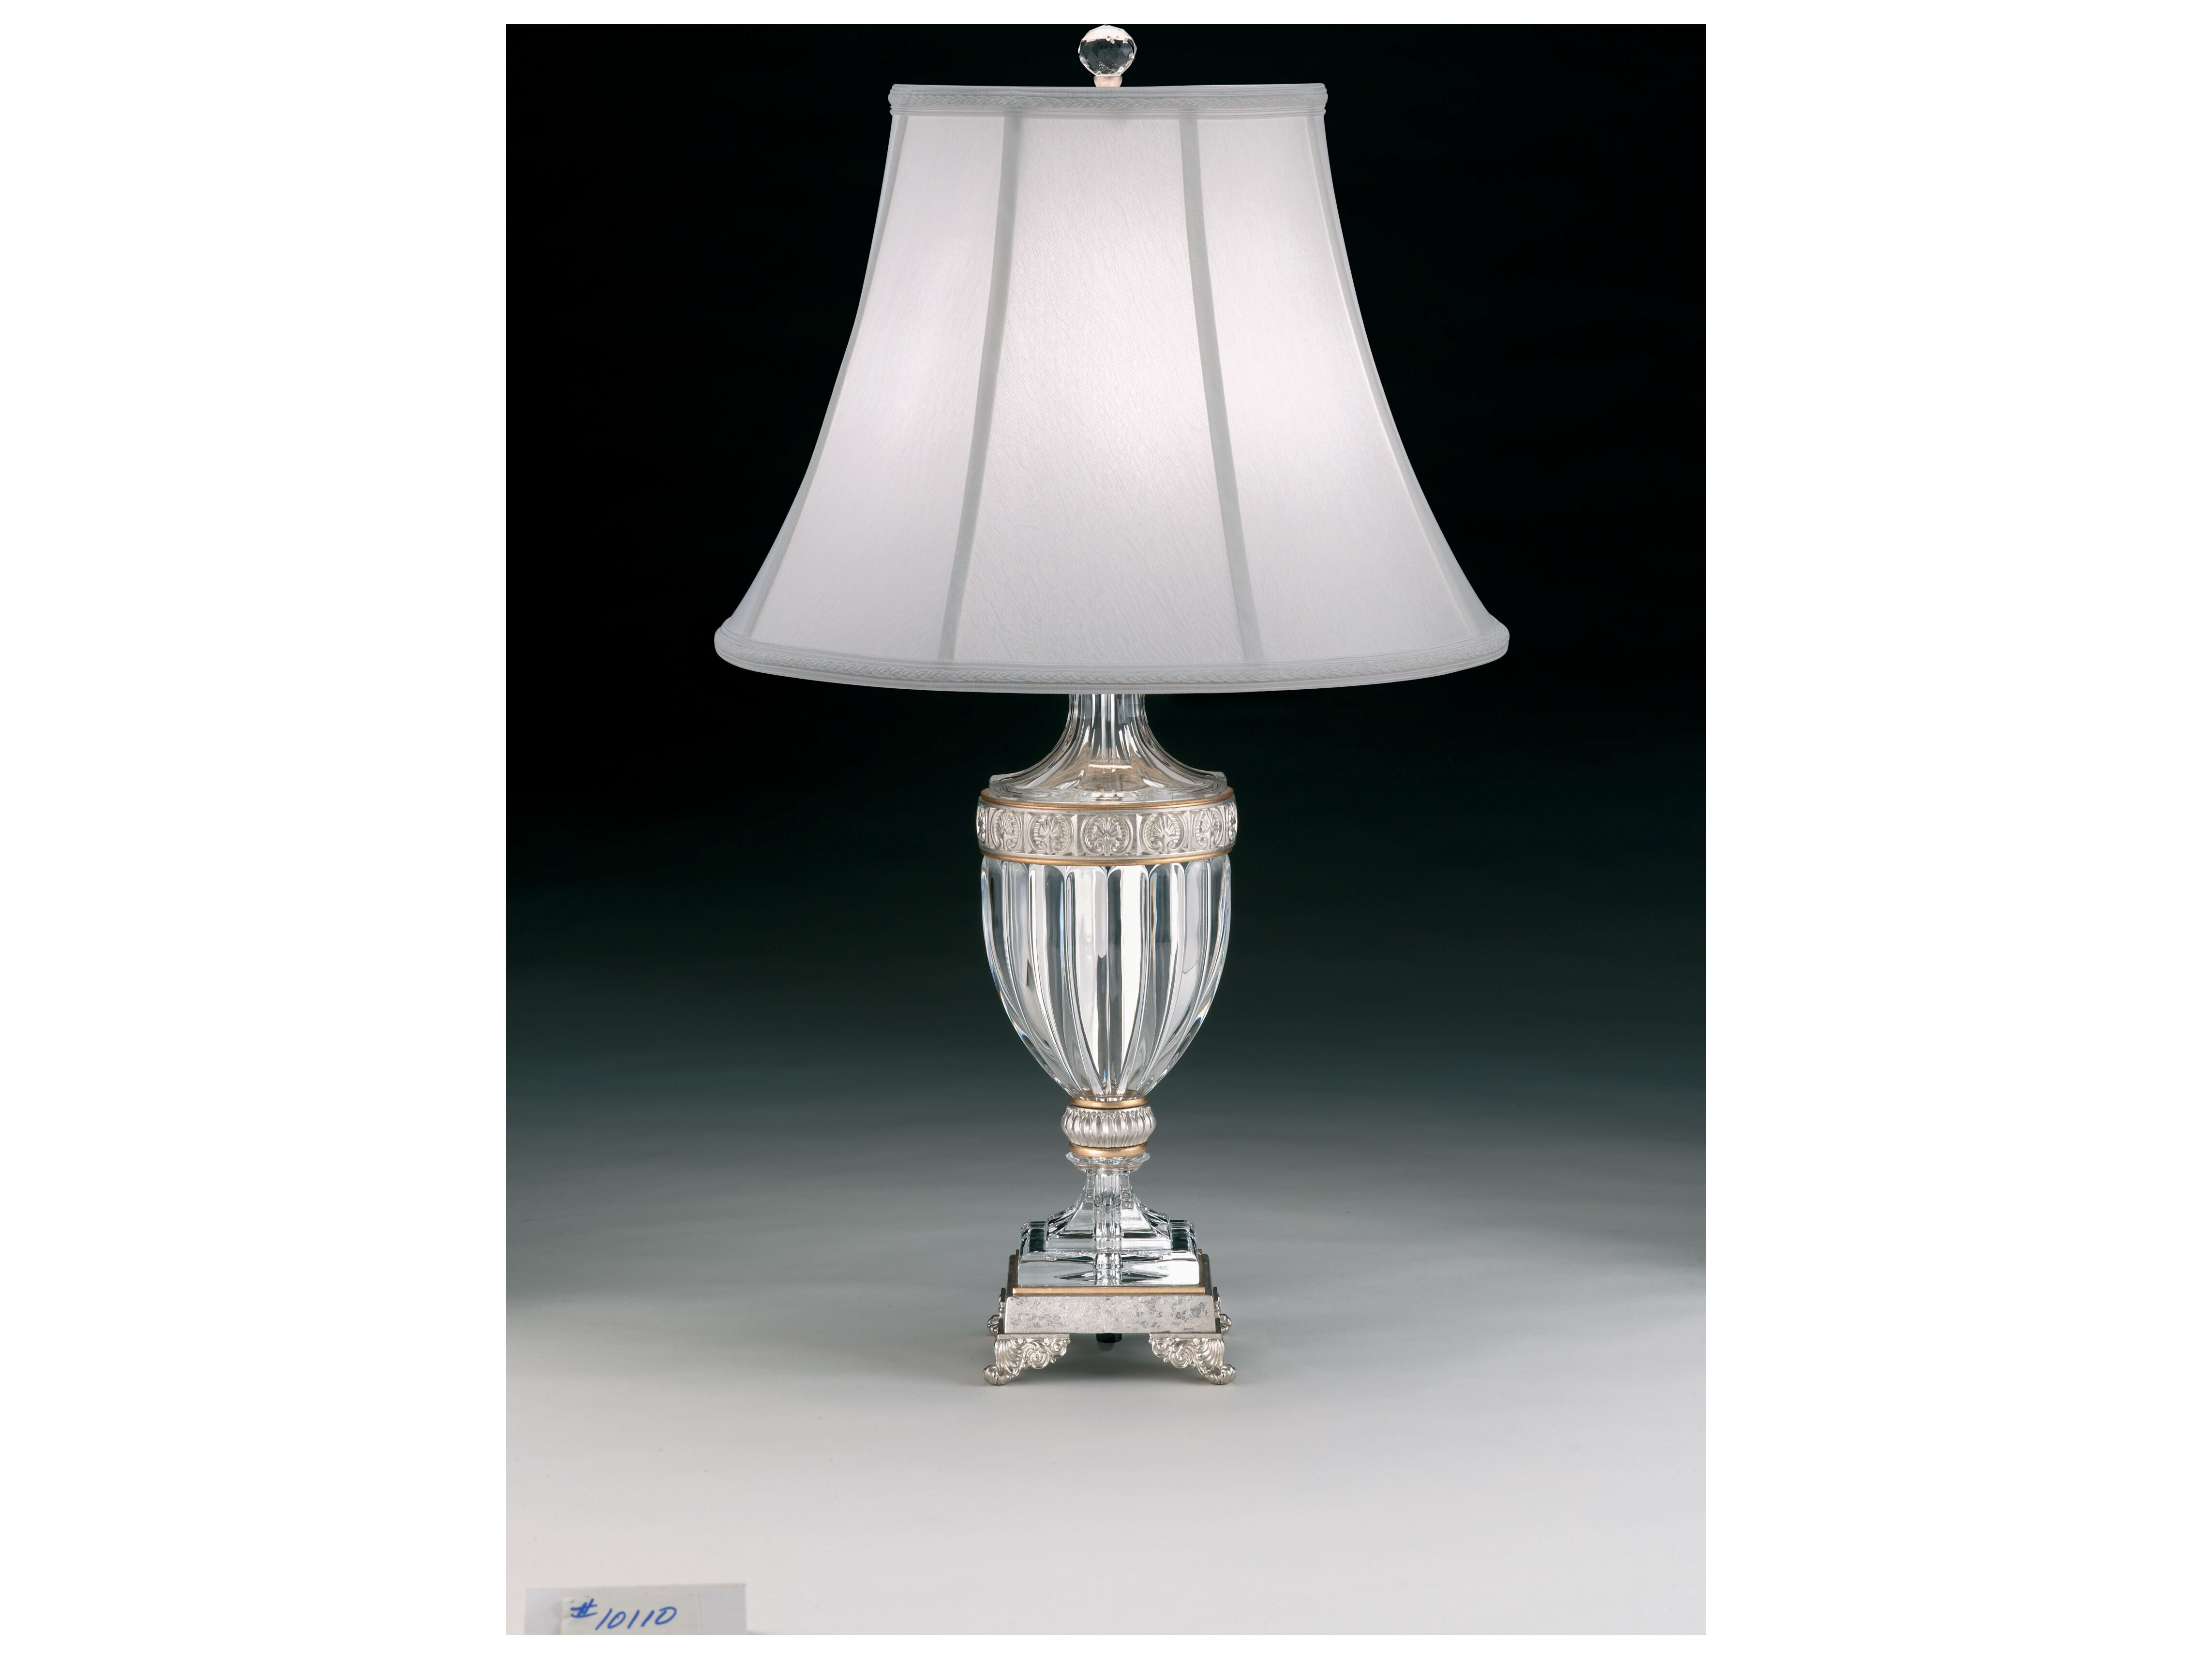 Schonbek dynasty table lamp 20111 lamps pinterest schonbek one of the oldest lighting companies in the world schonbek has established themselves as a go to source for fine crystal chandeliers and light fixtures aloadofball Images